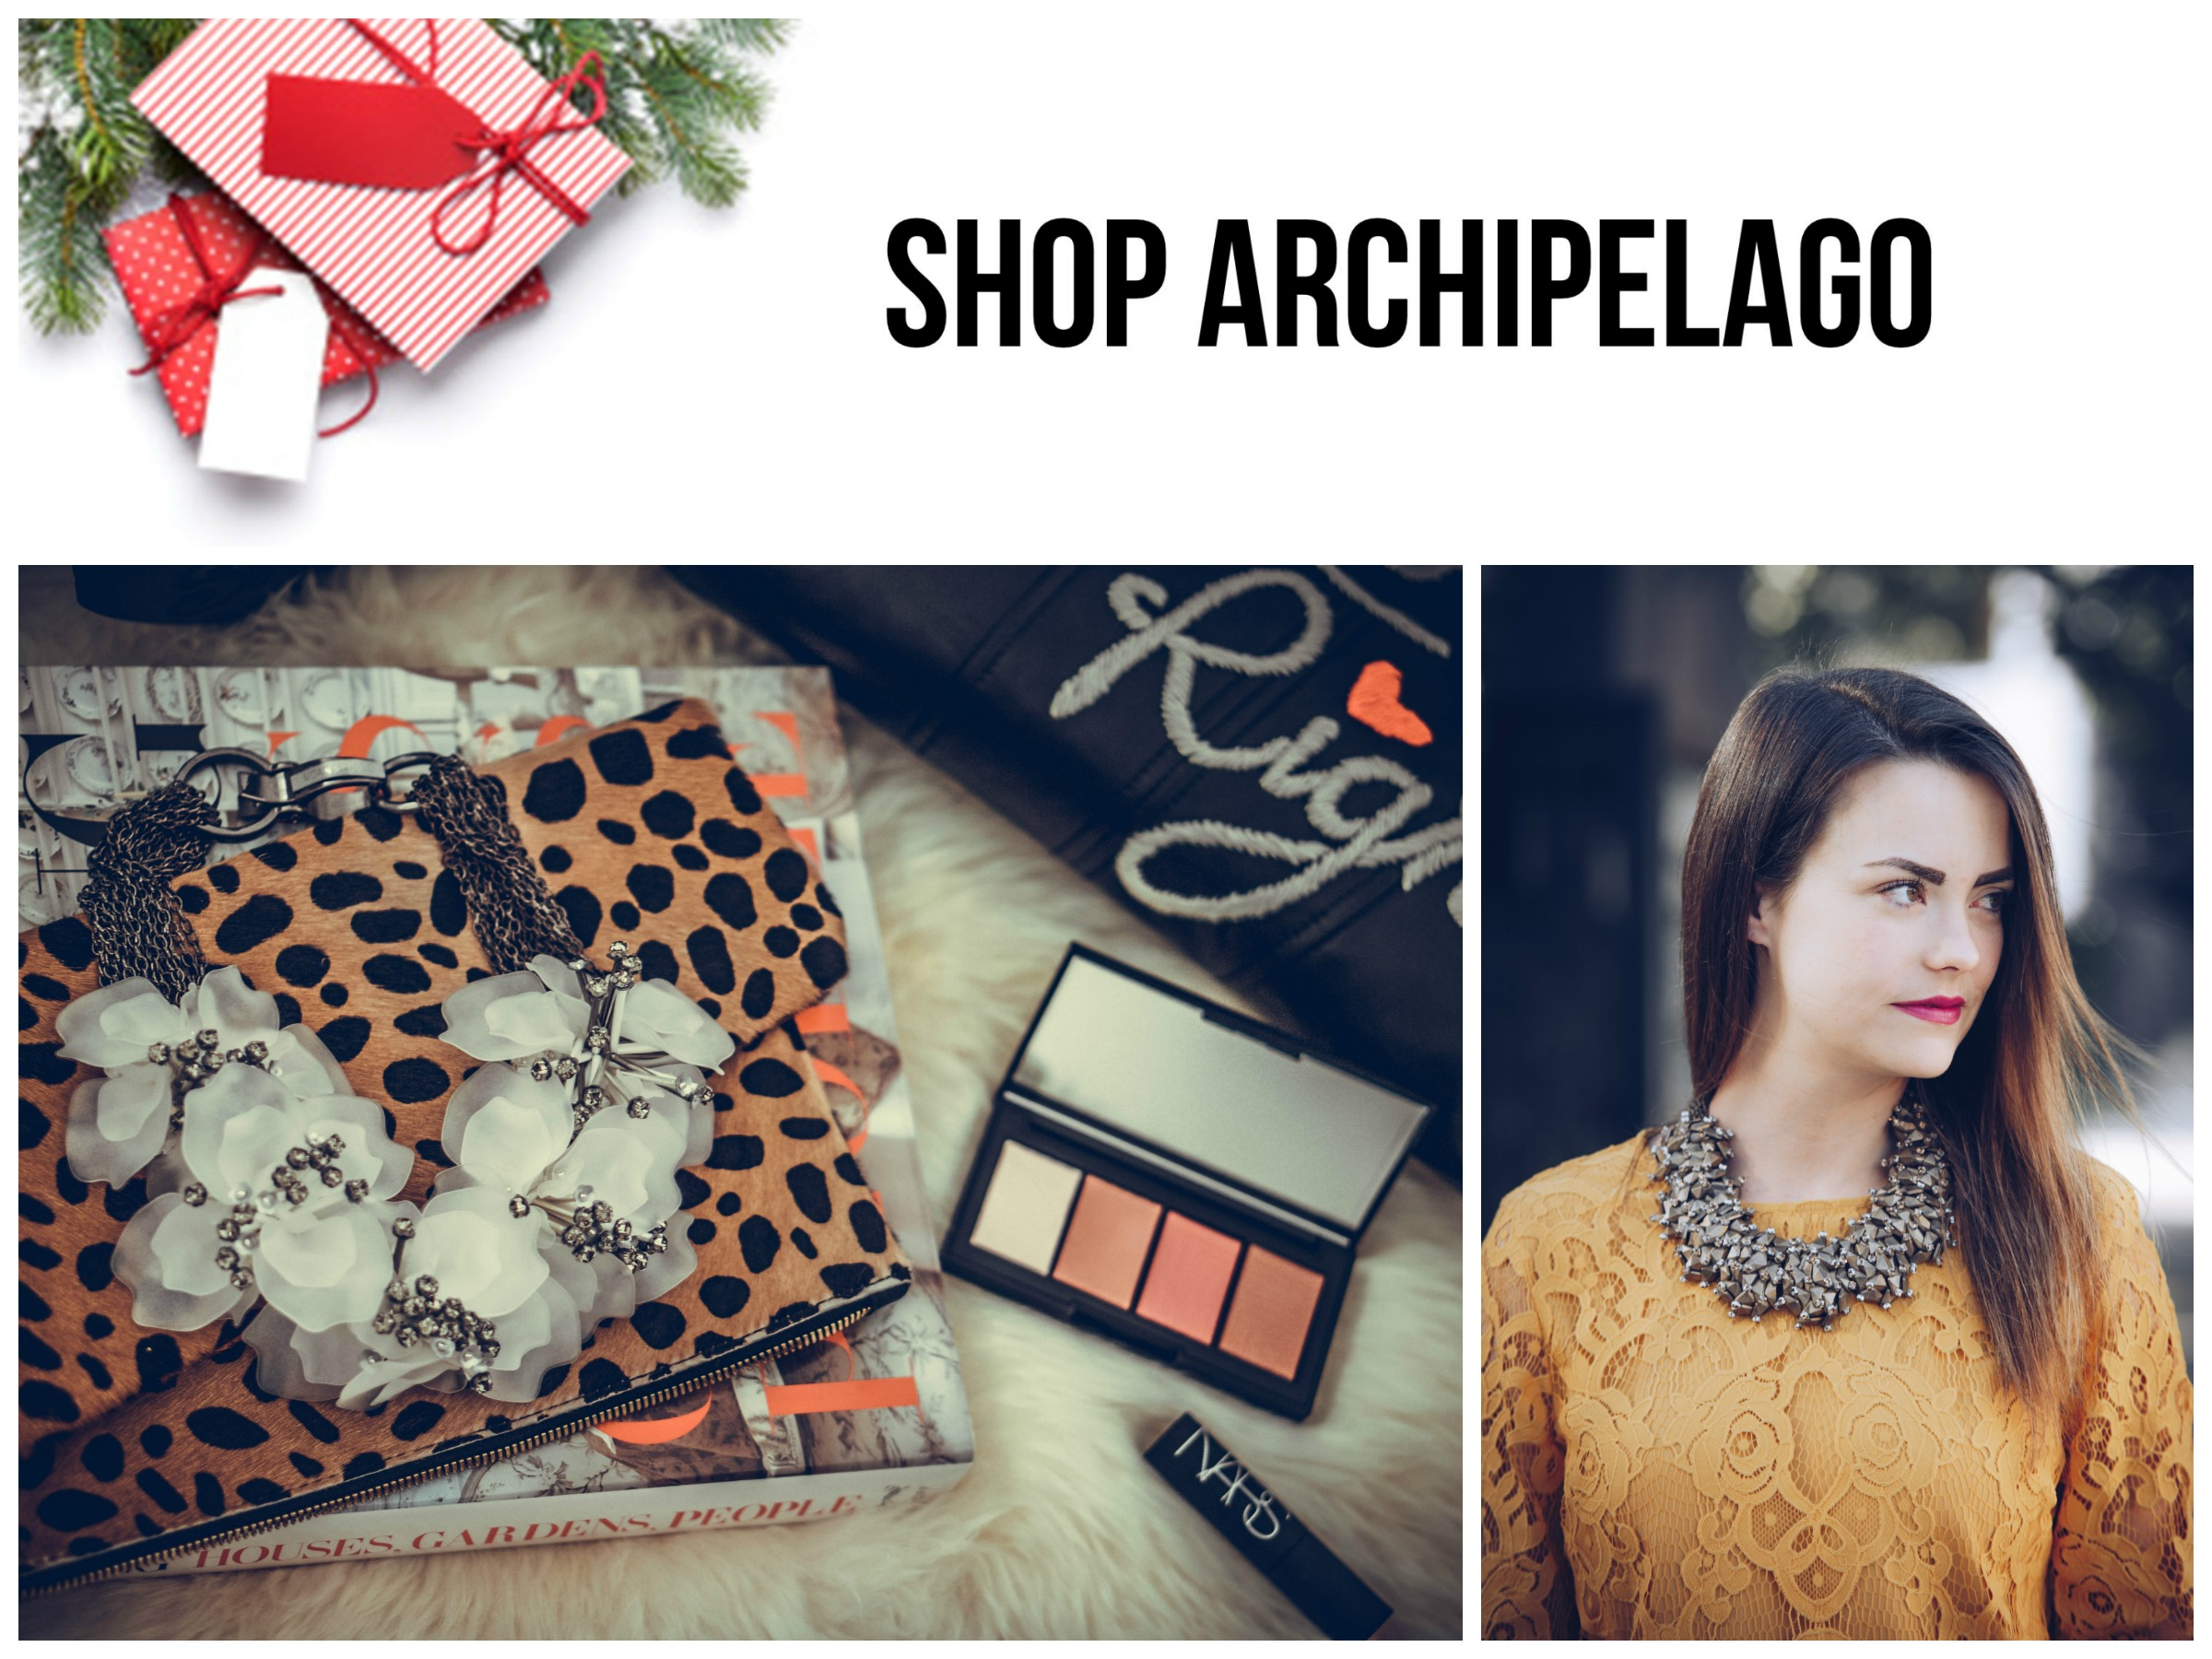 Shop Archipelago Jewelry, Small Business Saturday